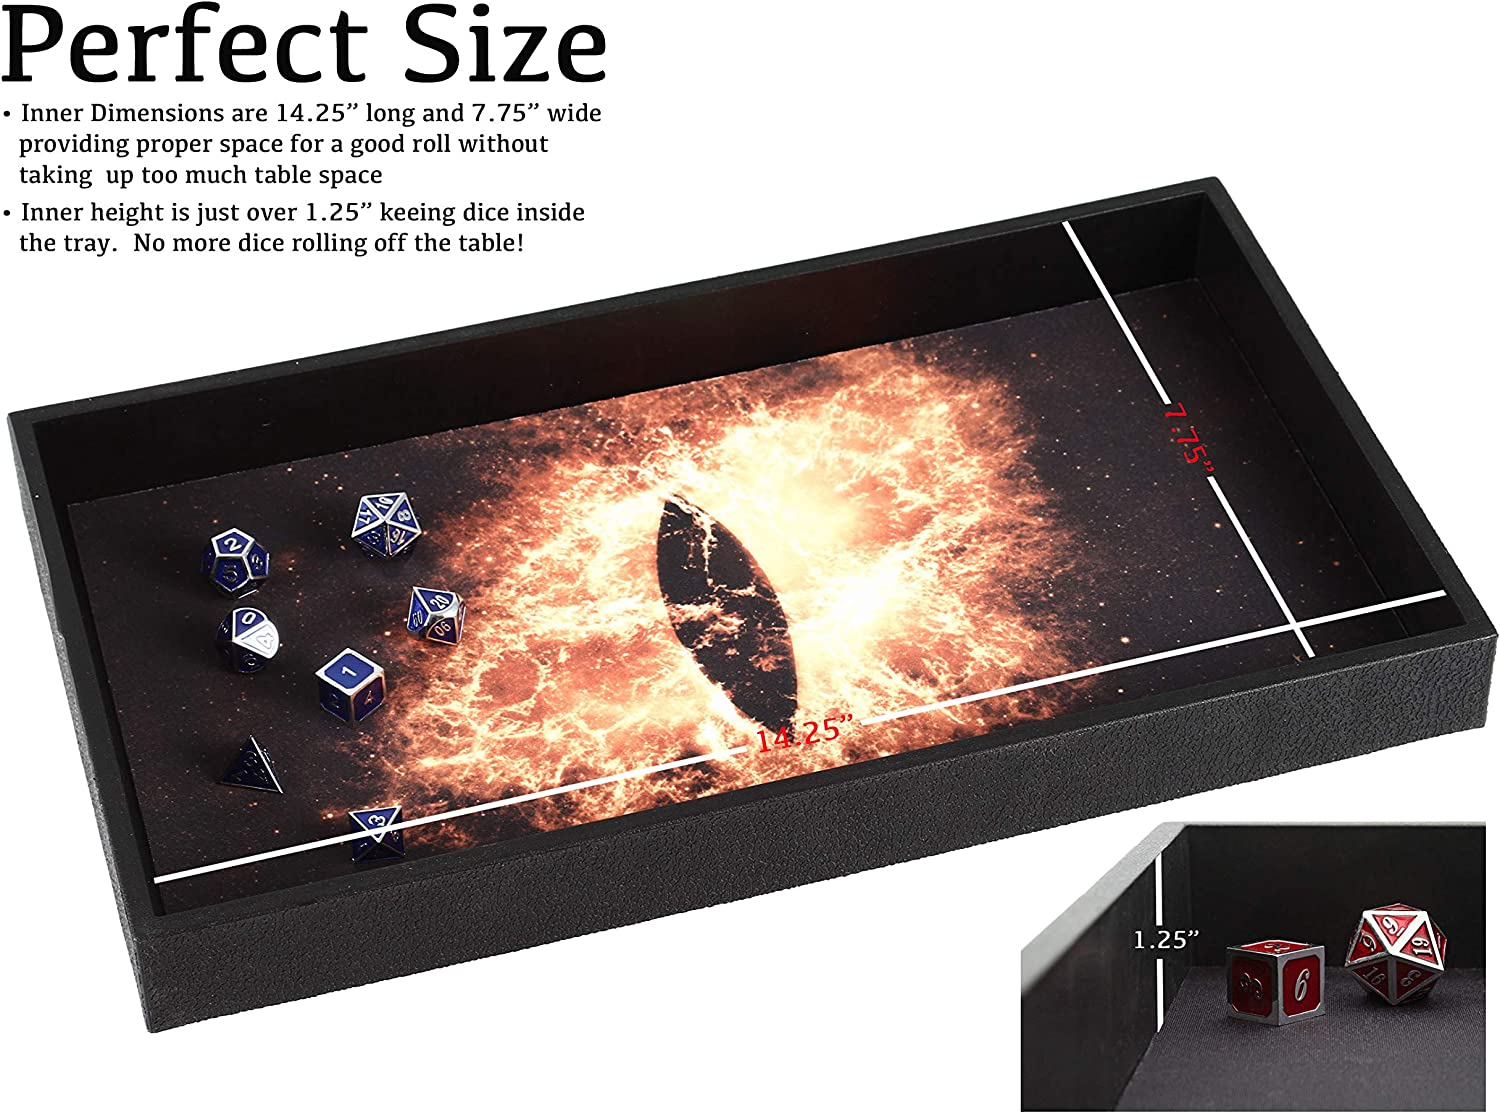 Dice Tray 14 for Any Dice or Board Game Tabletop RPGs Like D/&D Pathfinder Roleplaying Game Forged Dice Co Double Sided and Removable Neoprene Rolling Dice Mat